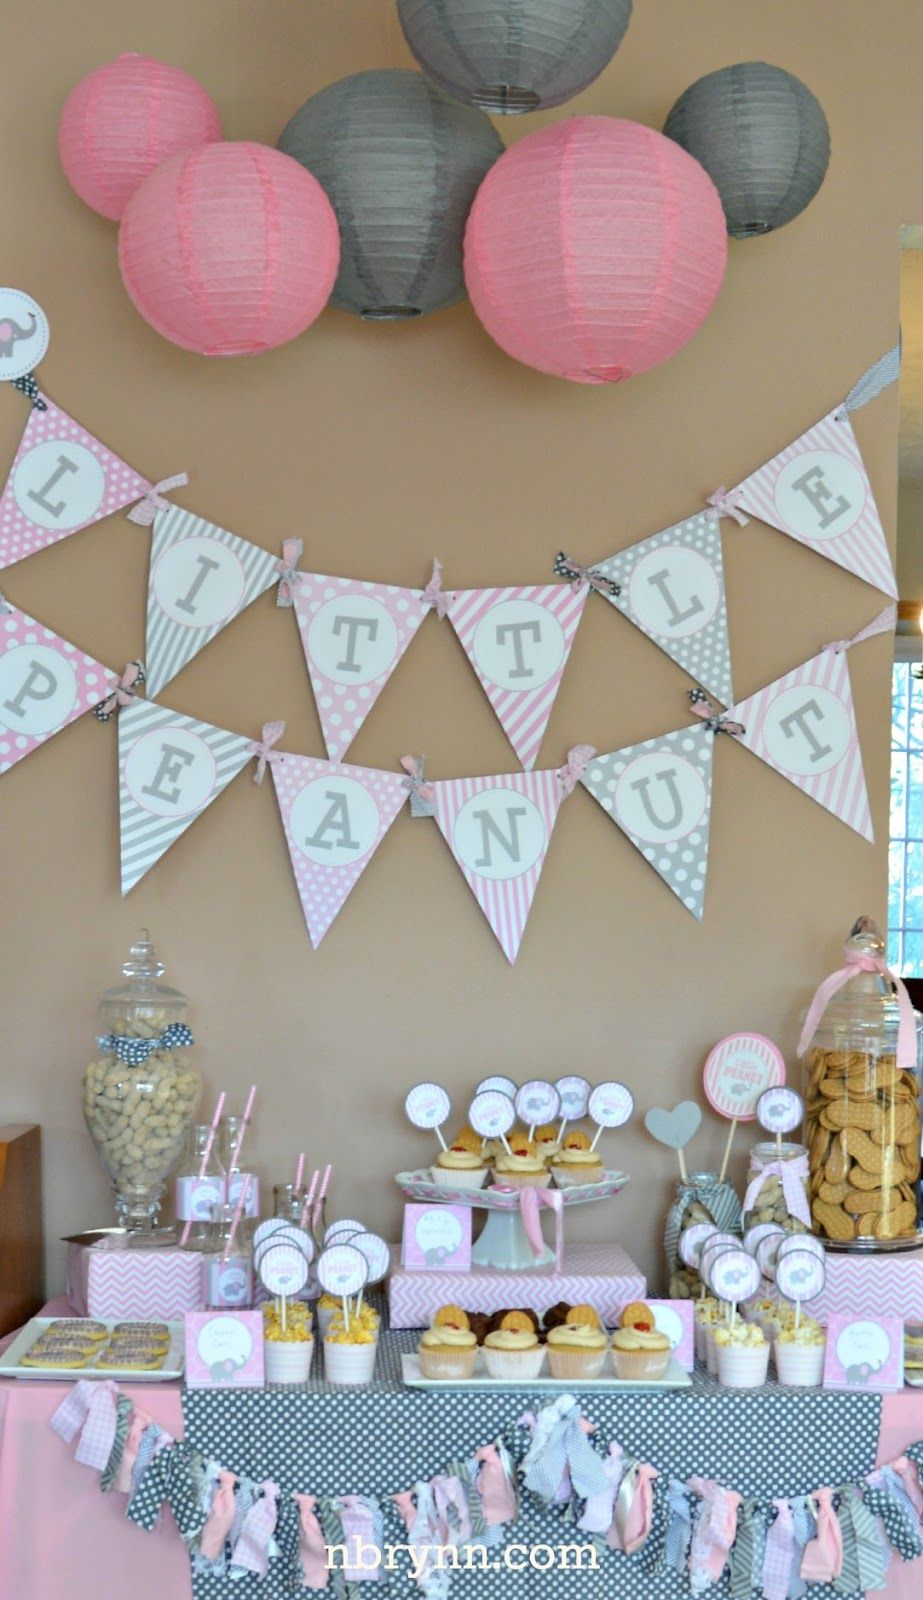 nbrynn: little peanut baby shower | party ideas | peanut baby shower